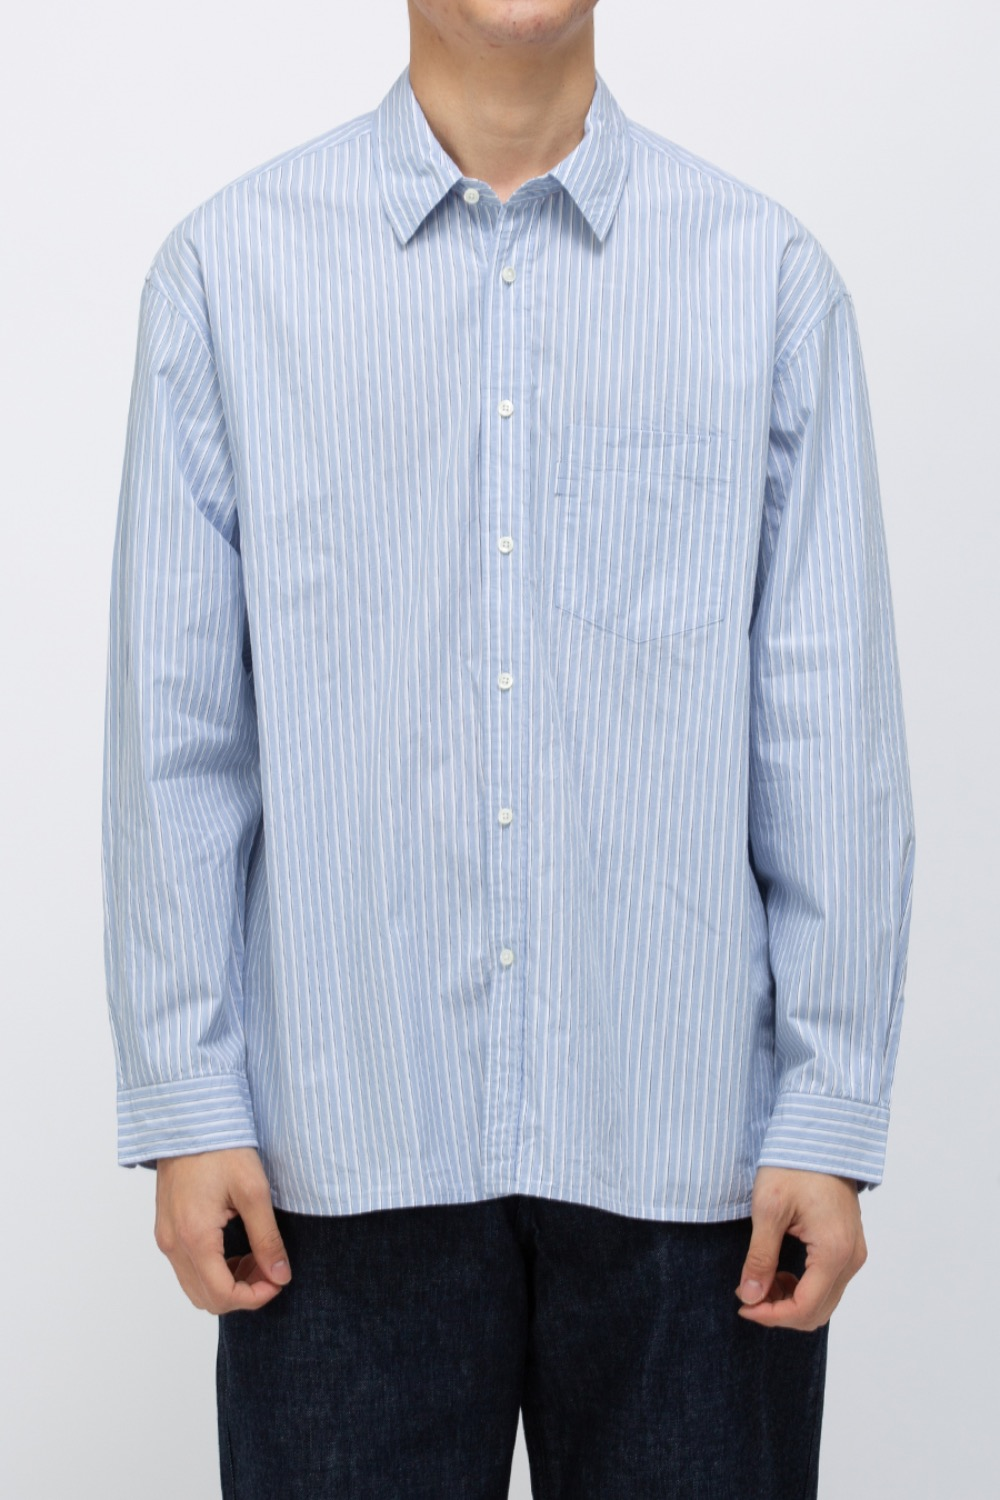 COMFORT SHIRT SUPERIOR ORGANIC COTTON TYPEWRITER STRIPE WASHER FINISH